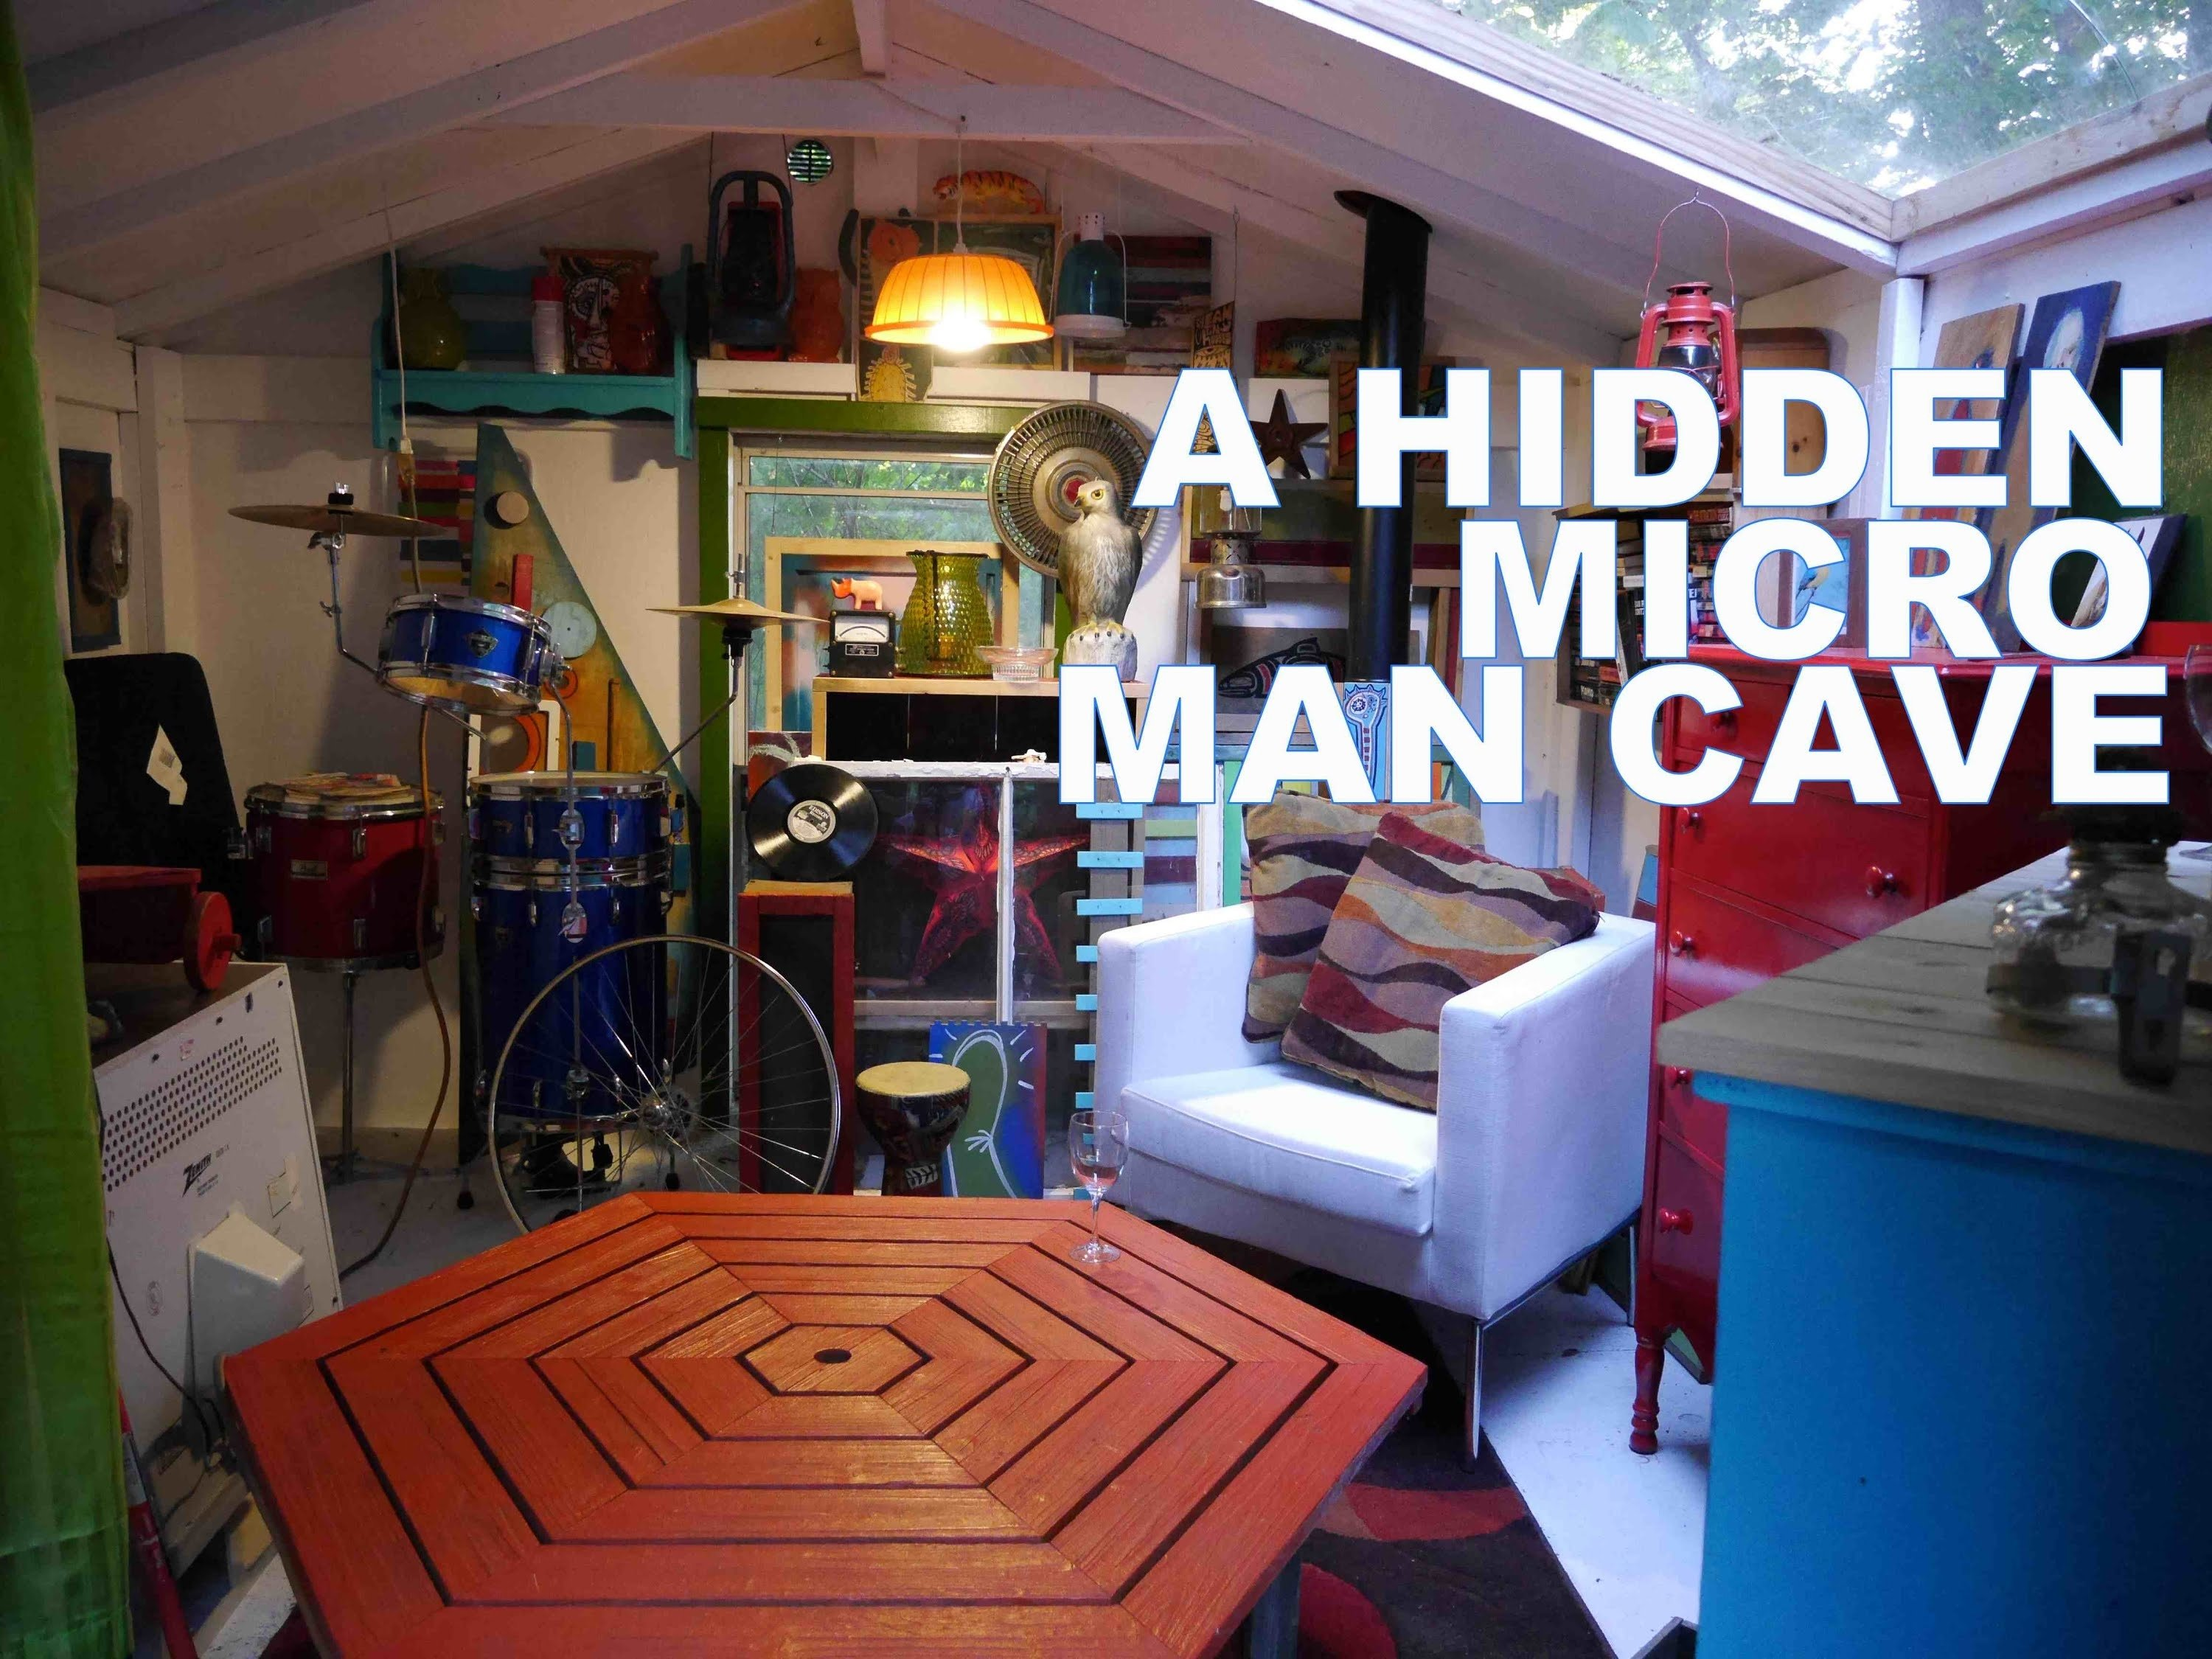 10 Attractive Man Cave Ideas Small Room ideas man cave ideas for small spaces 2020